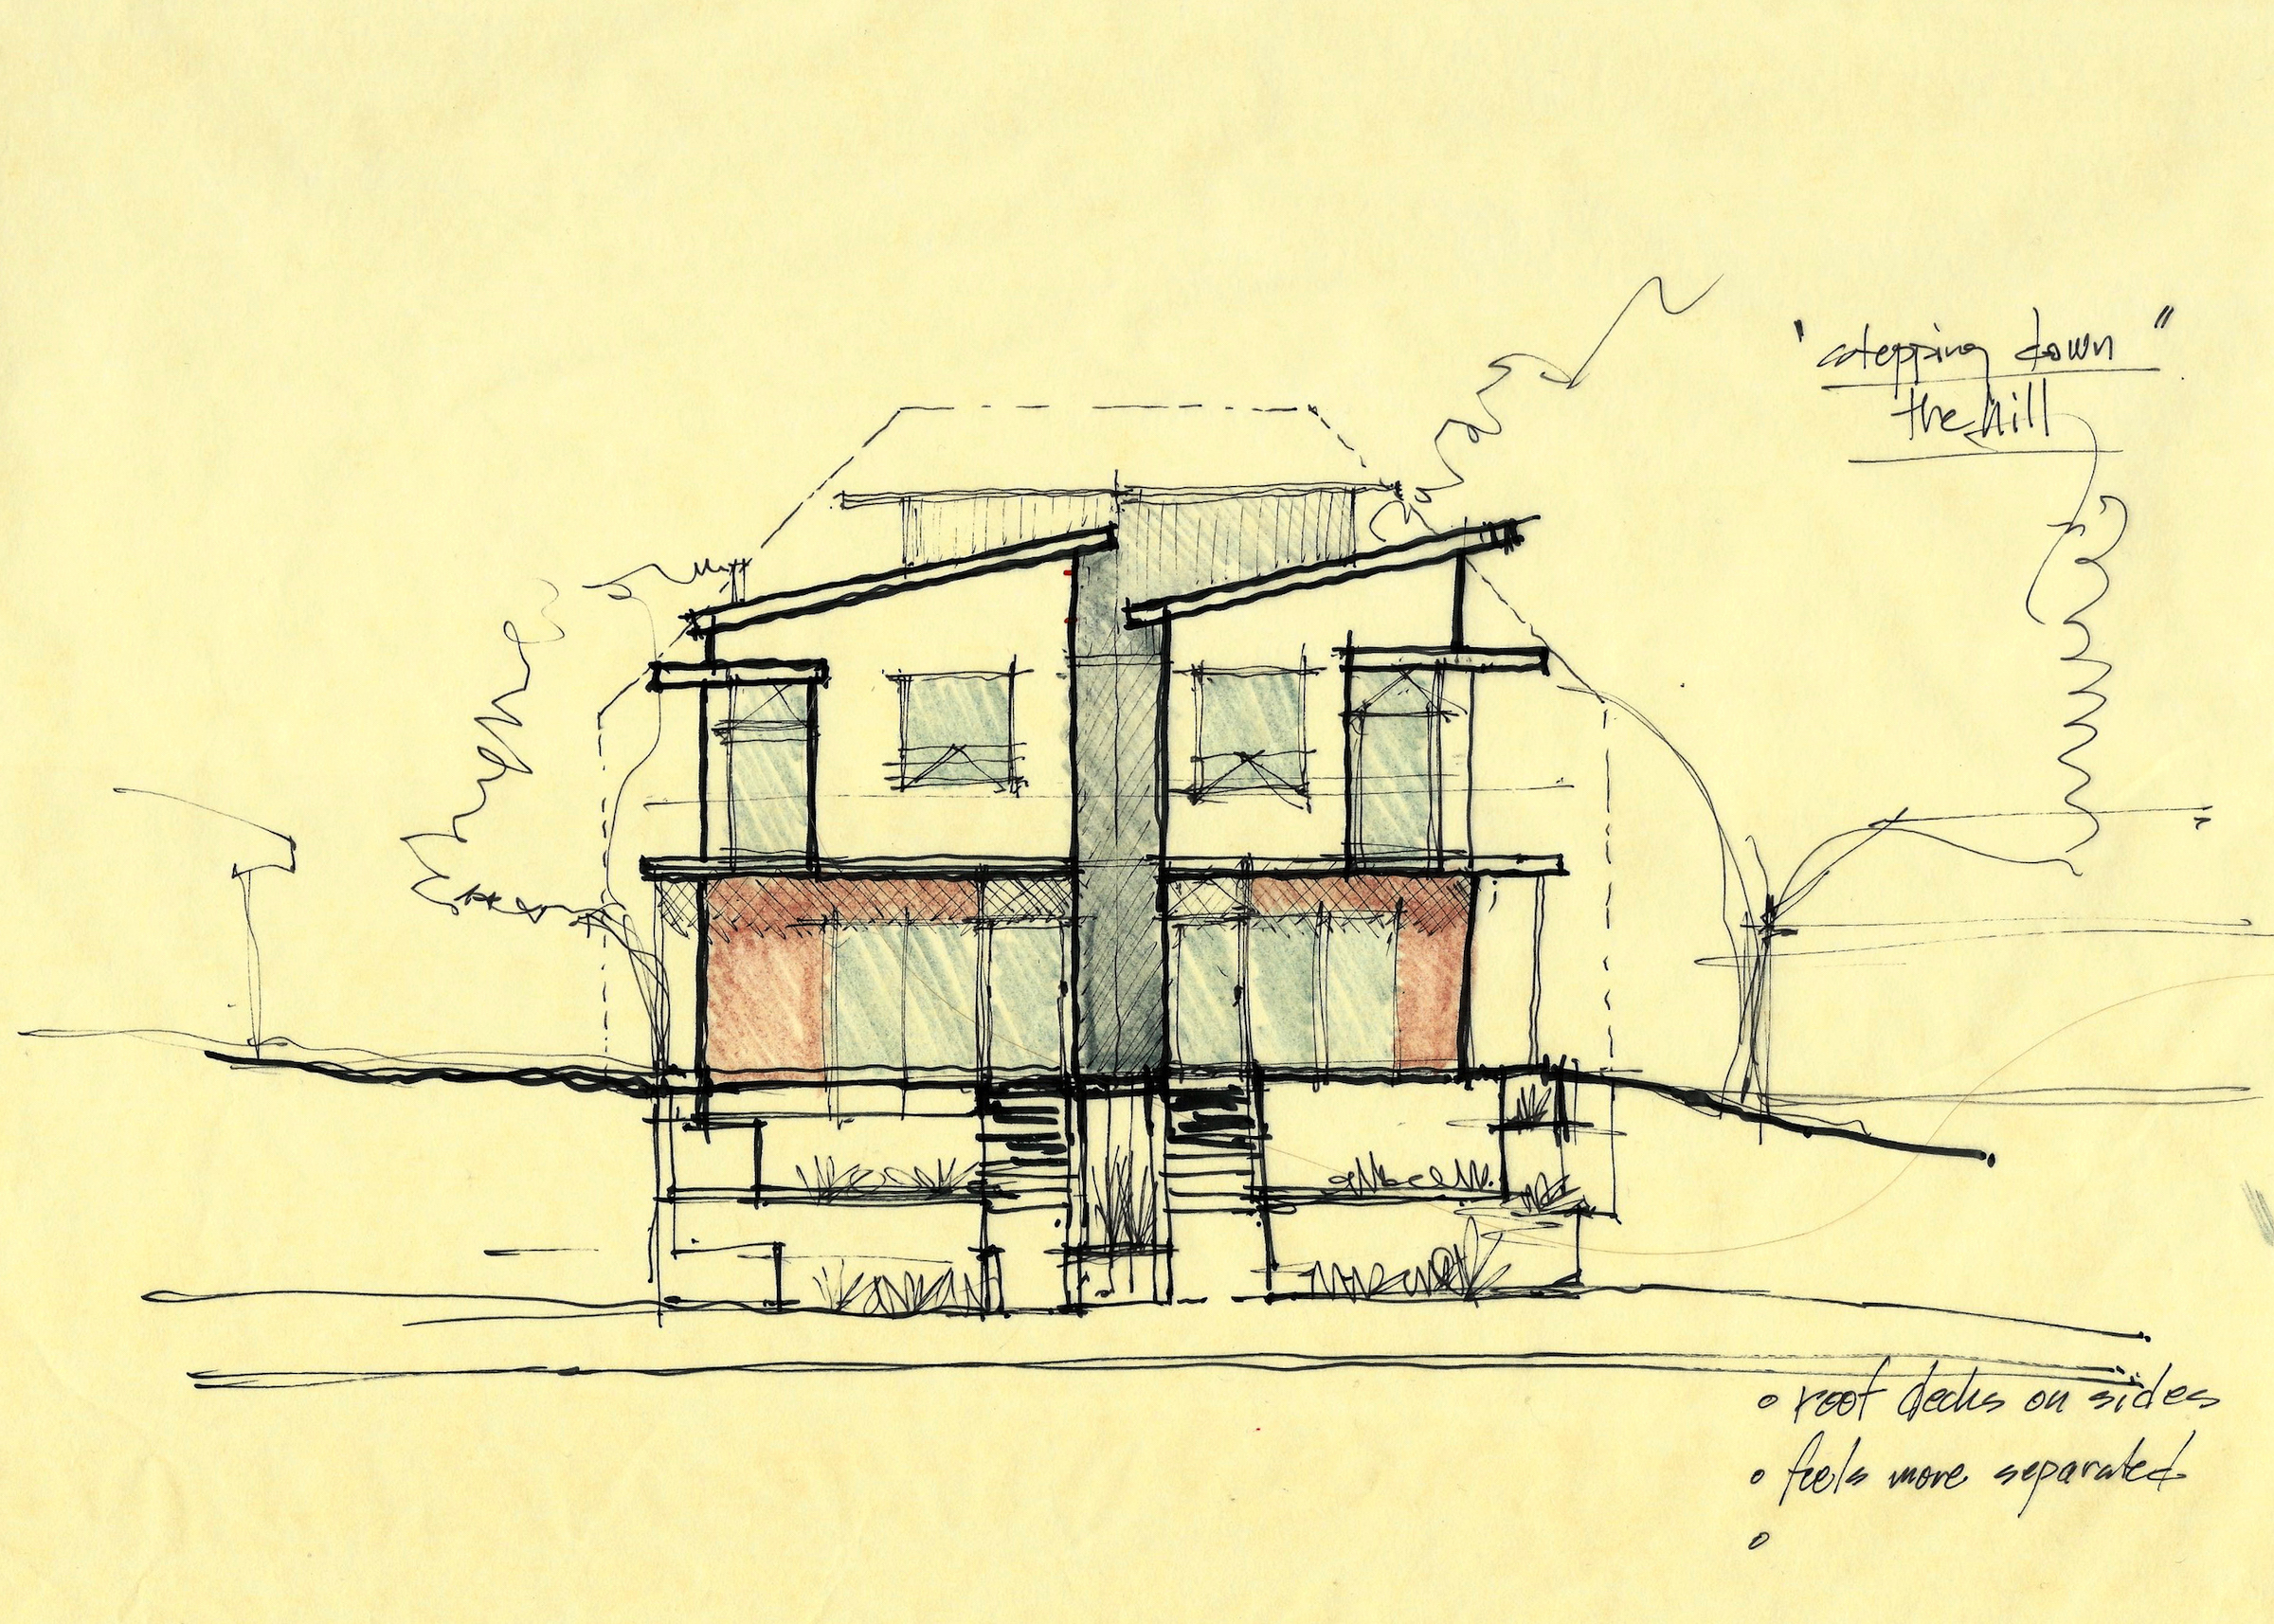 Sherman-Stepping down the hill front elevation sketch.jpg